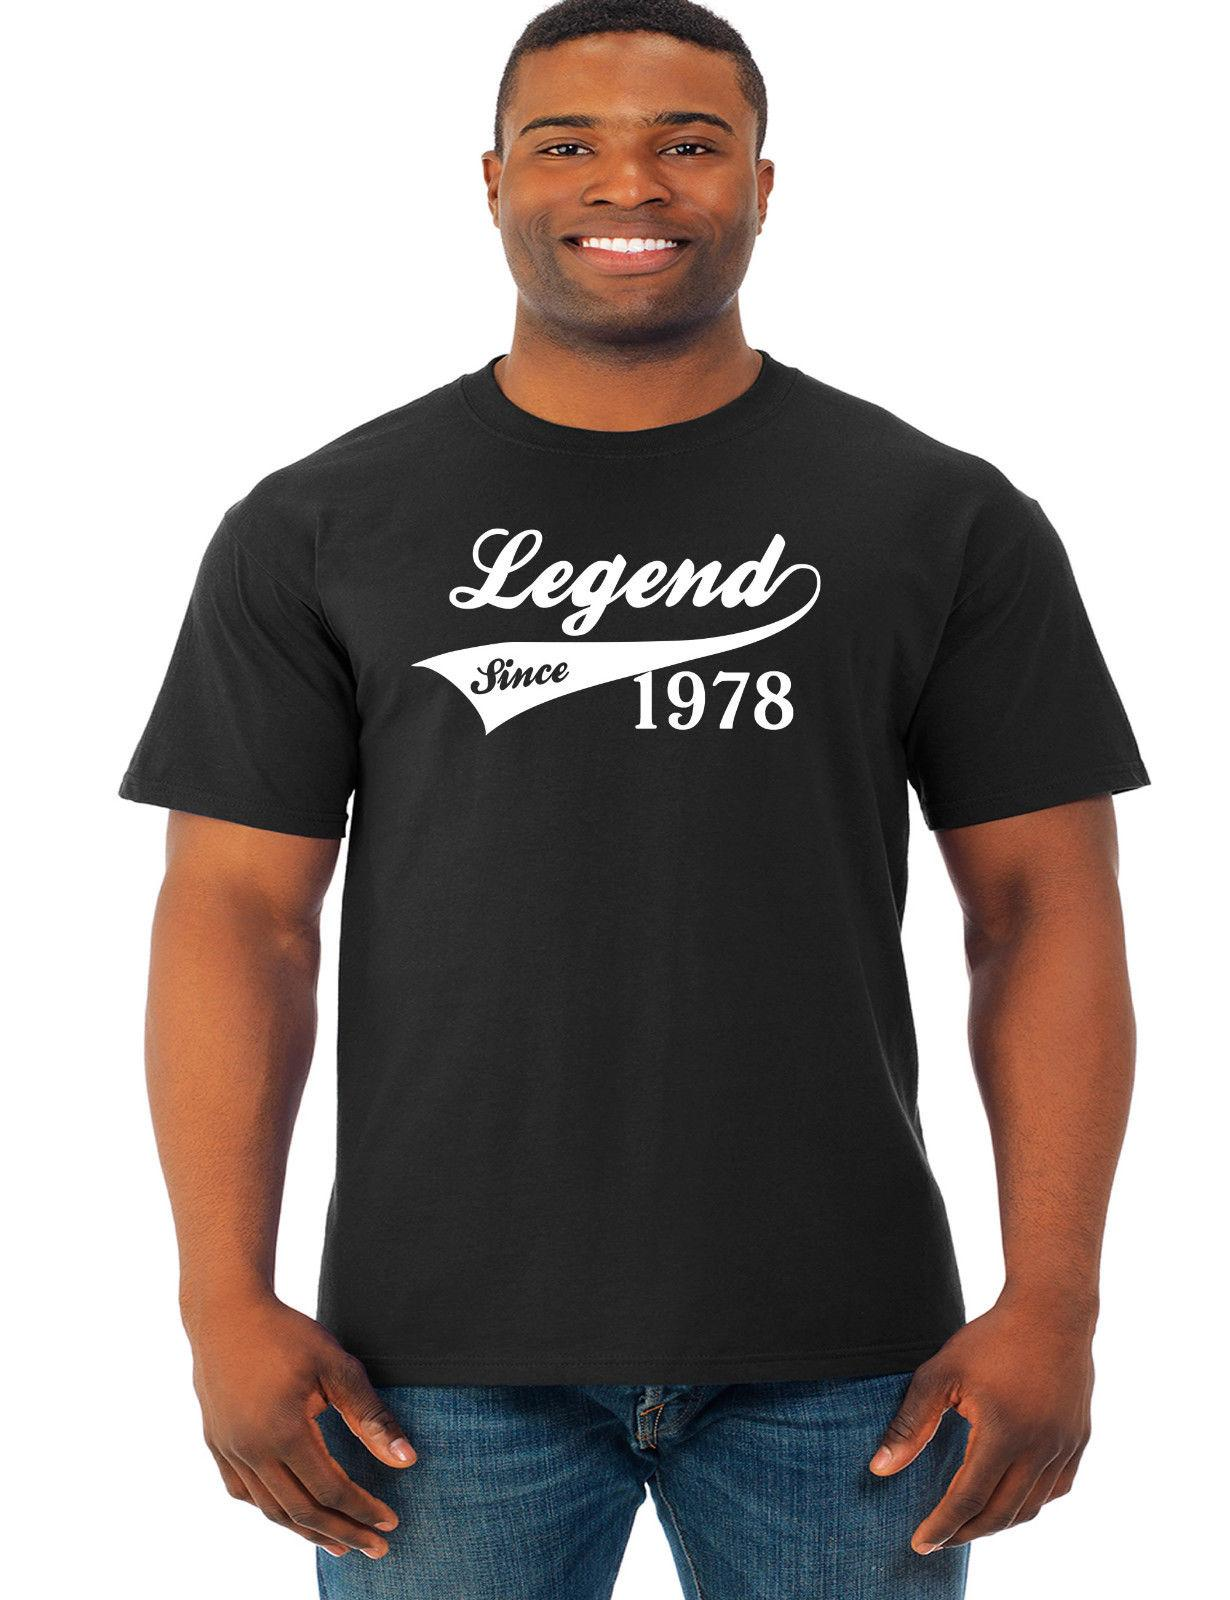 Birthday Presents For Dad 40th Gifts Mens Legend Since 1978 Funny Tops Hip Hop Style Short Sleeve Leisure Silly T Shirt Make Your Own Tee